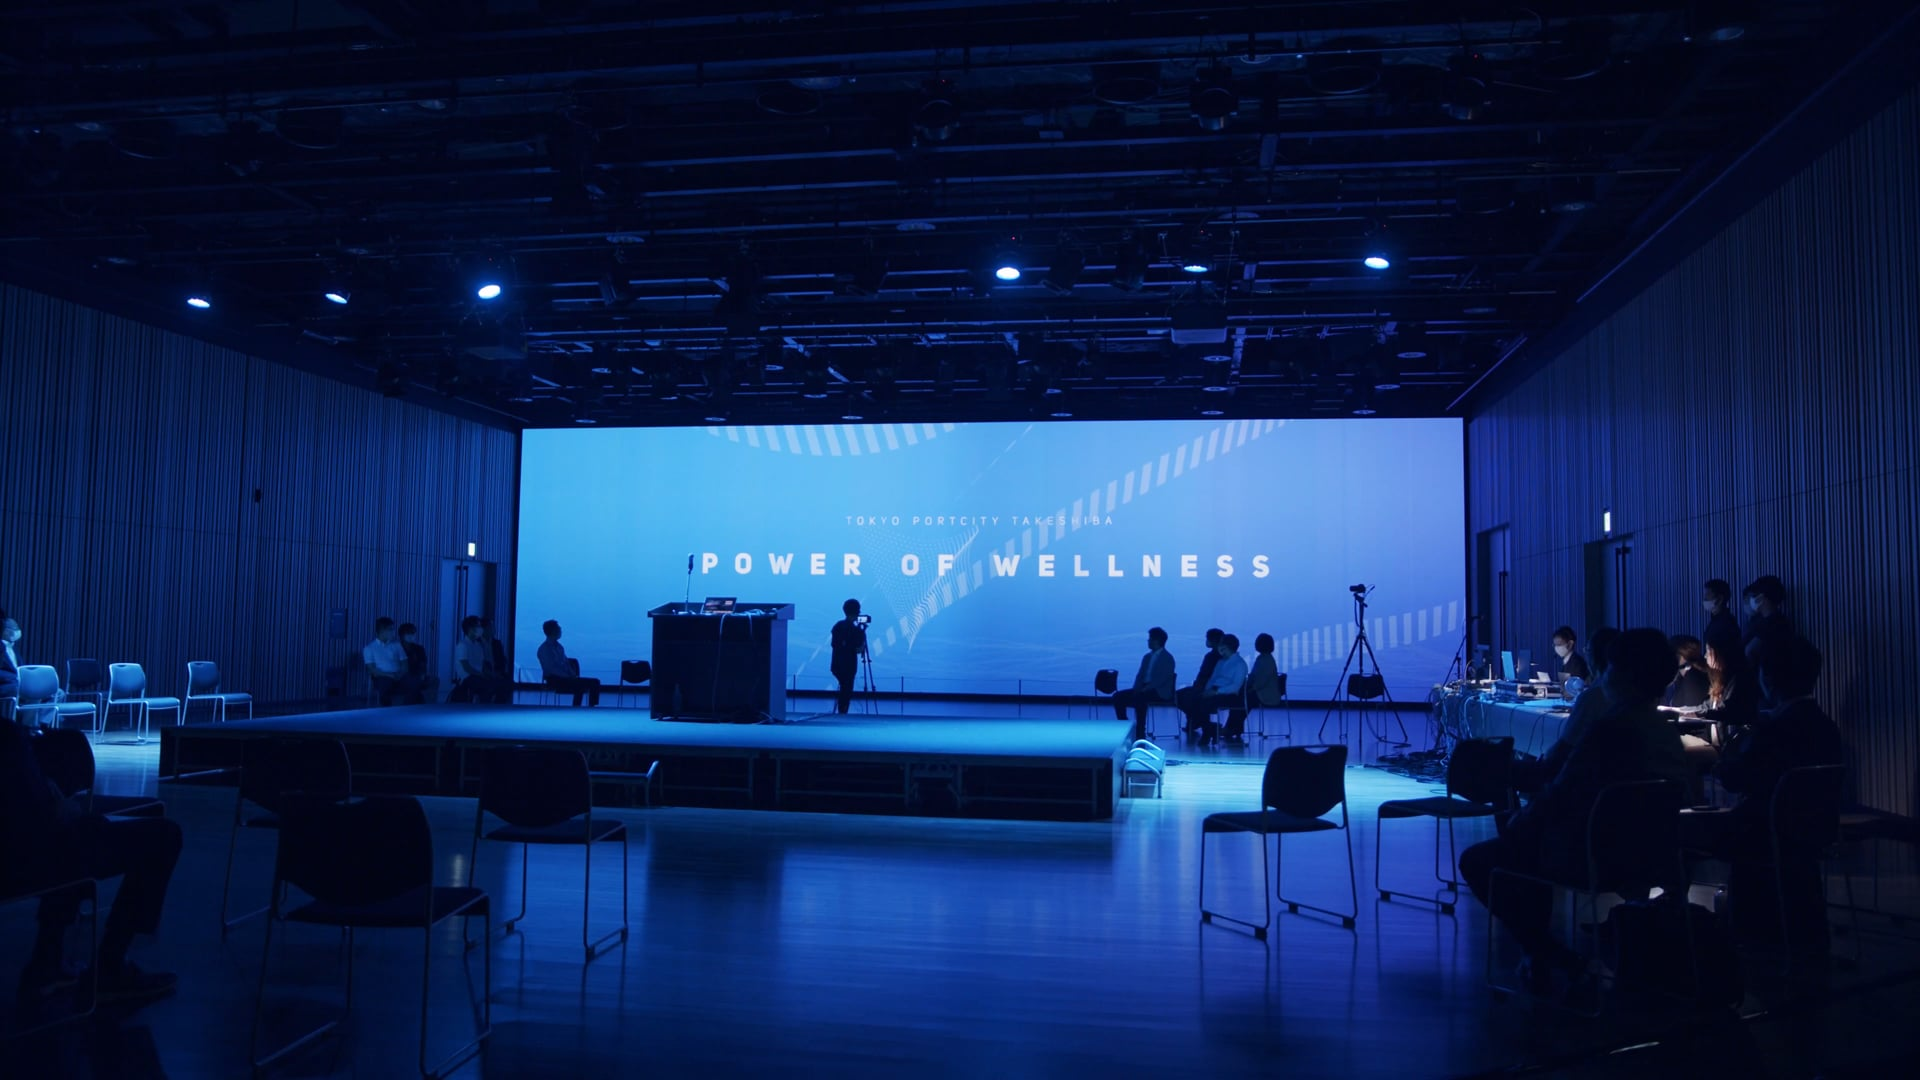 Power of Wellness at TOKYO PORTCITY TAKESHIBA Online Event Opening